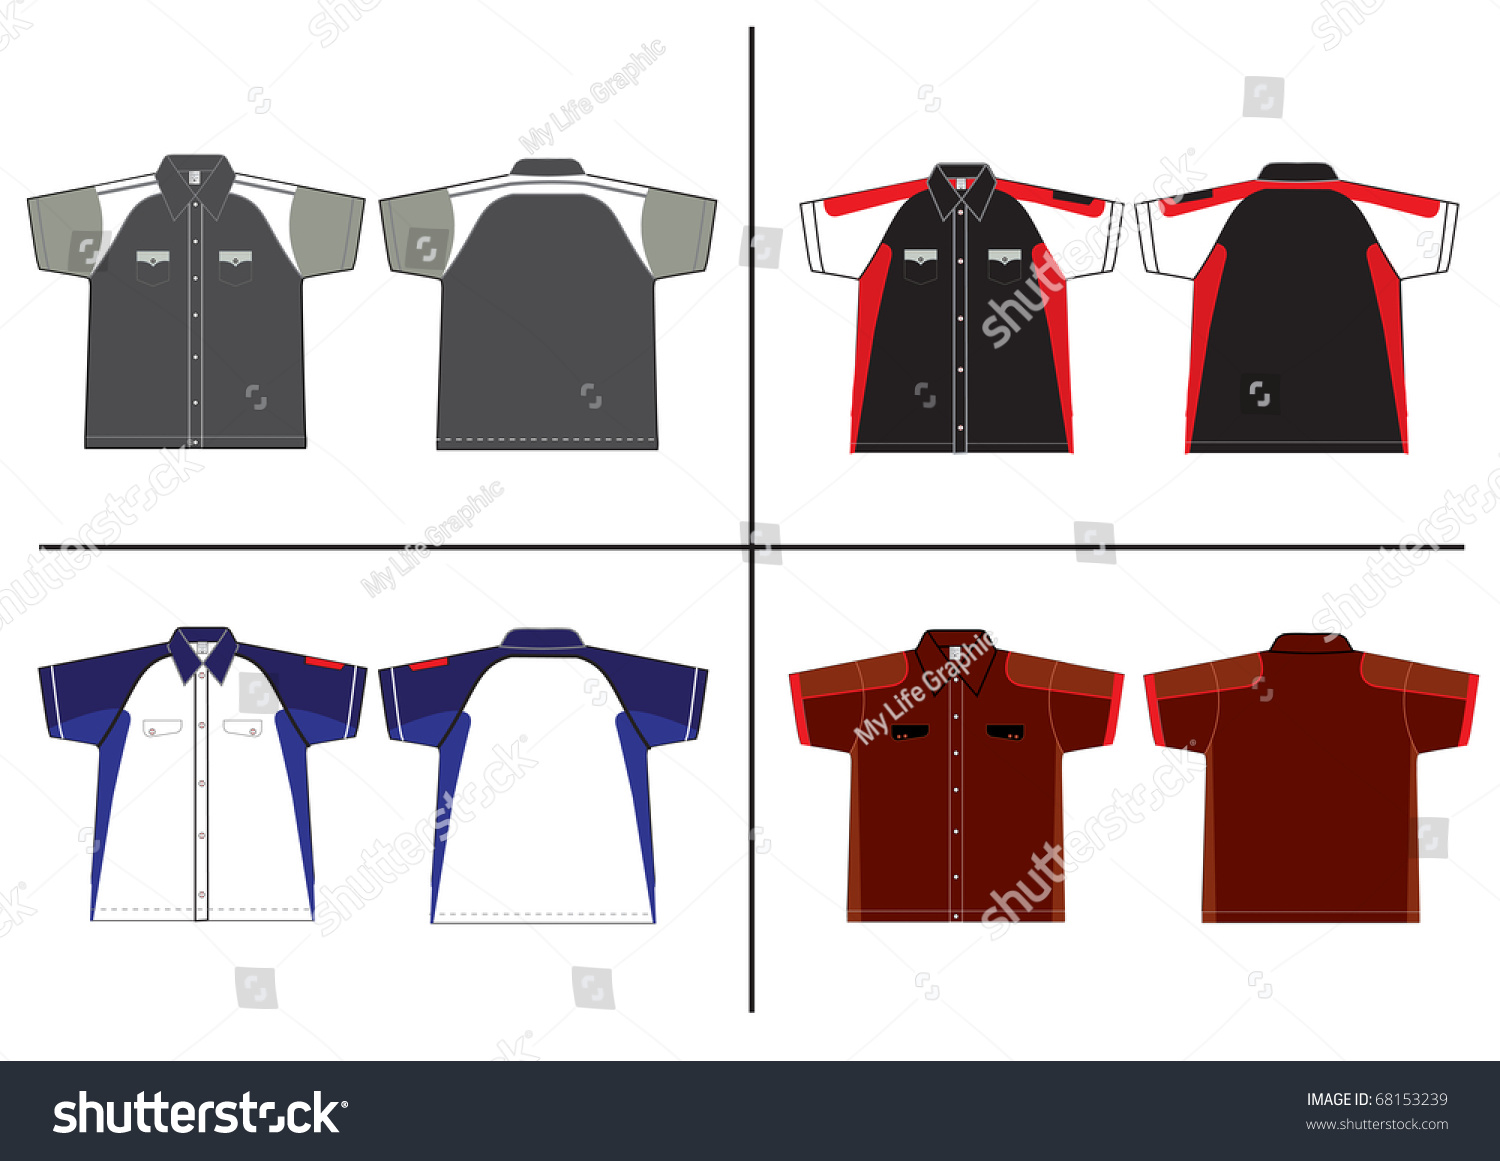 Shirt design illustrator template - T Shirt Design Vector Template Front And Back View